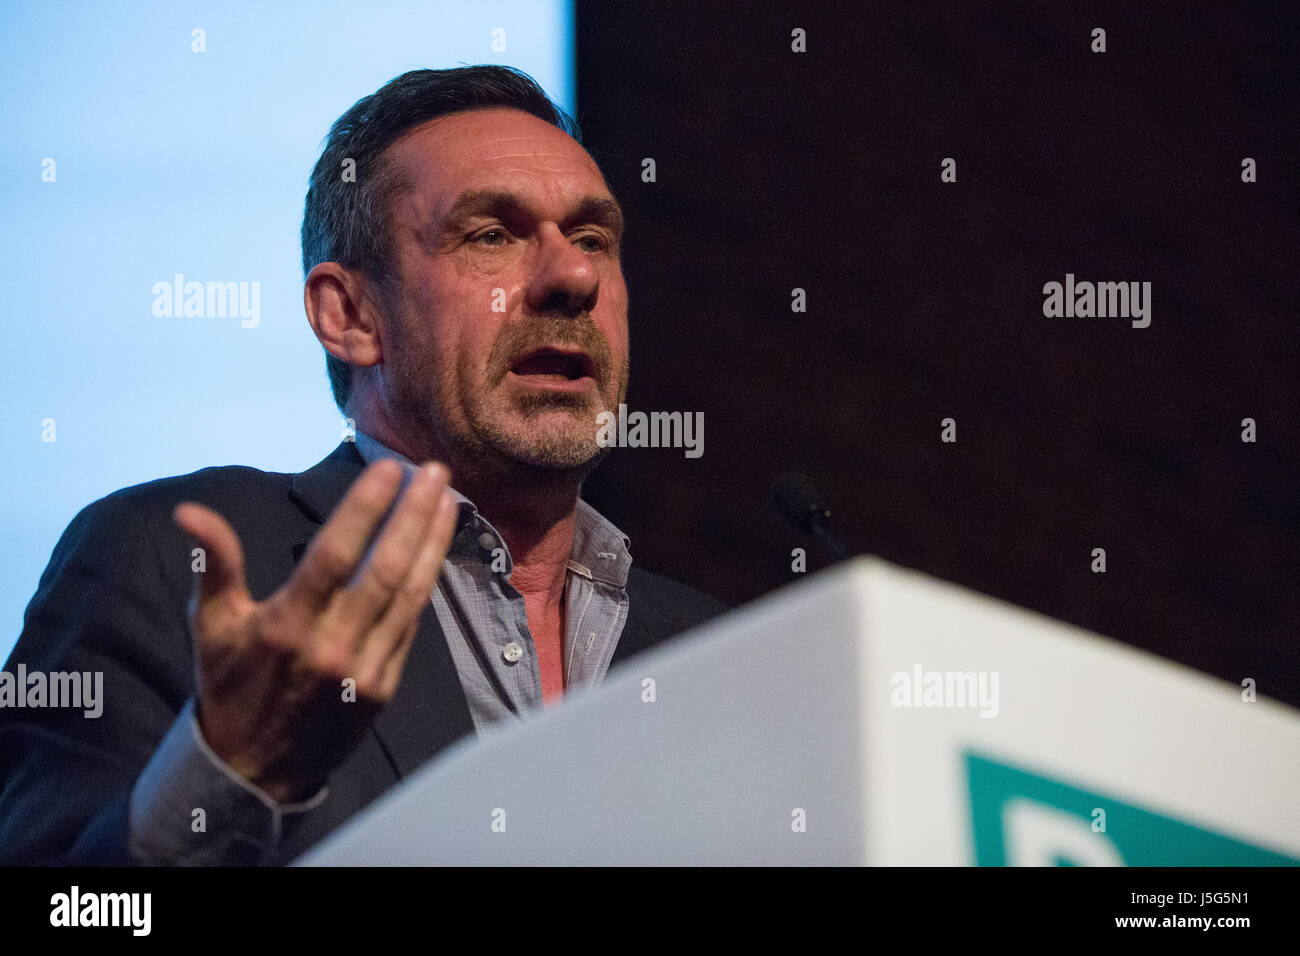 London, UK. 15th May, 2017. Journalist Paul Mason addresses the launch event for the Progressive Alliance. - Stock Image